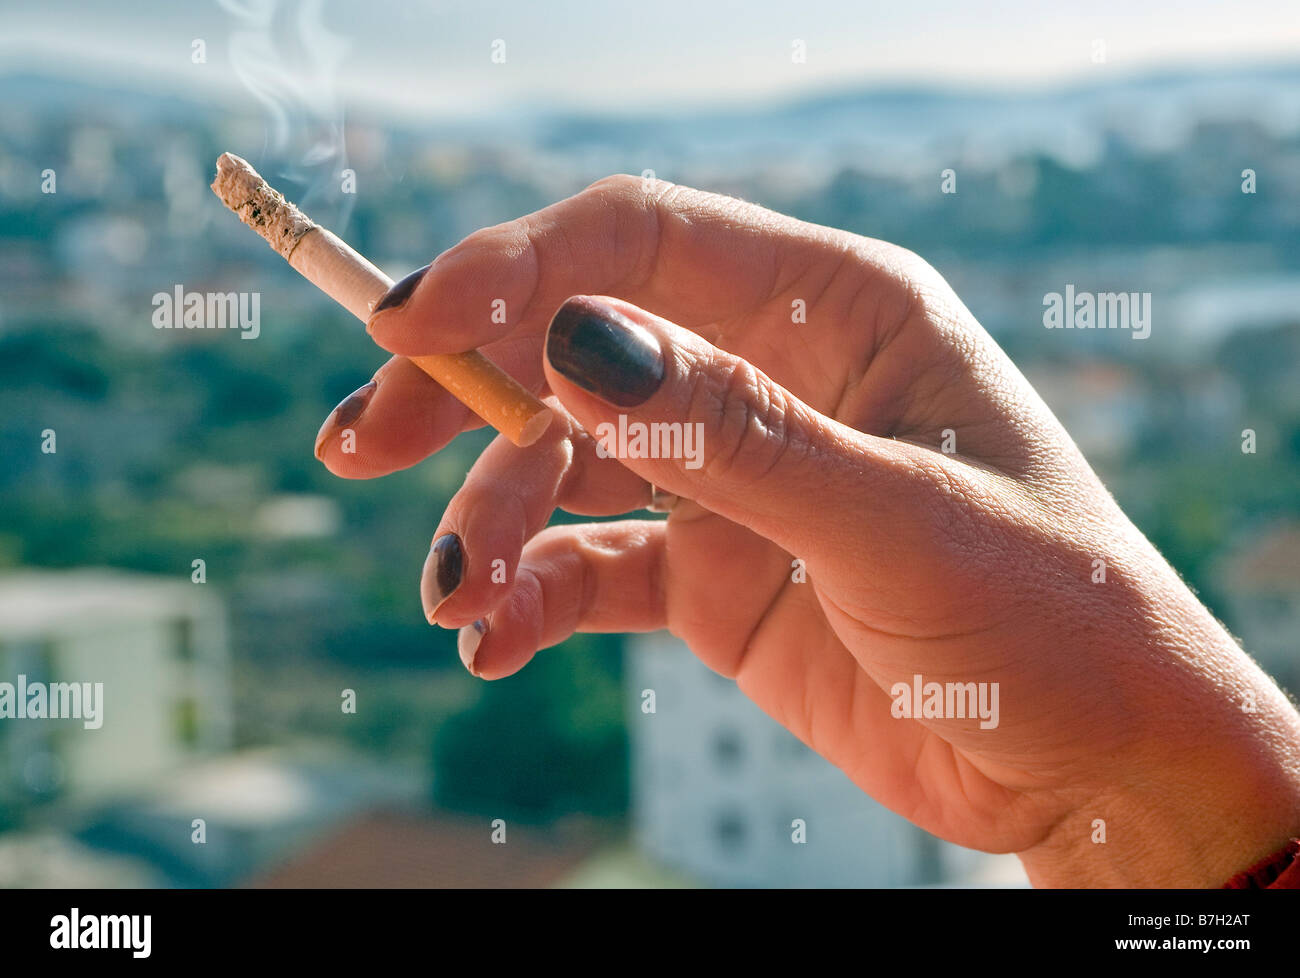 Female hand with cigarette - Stock Image